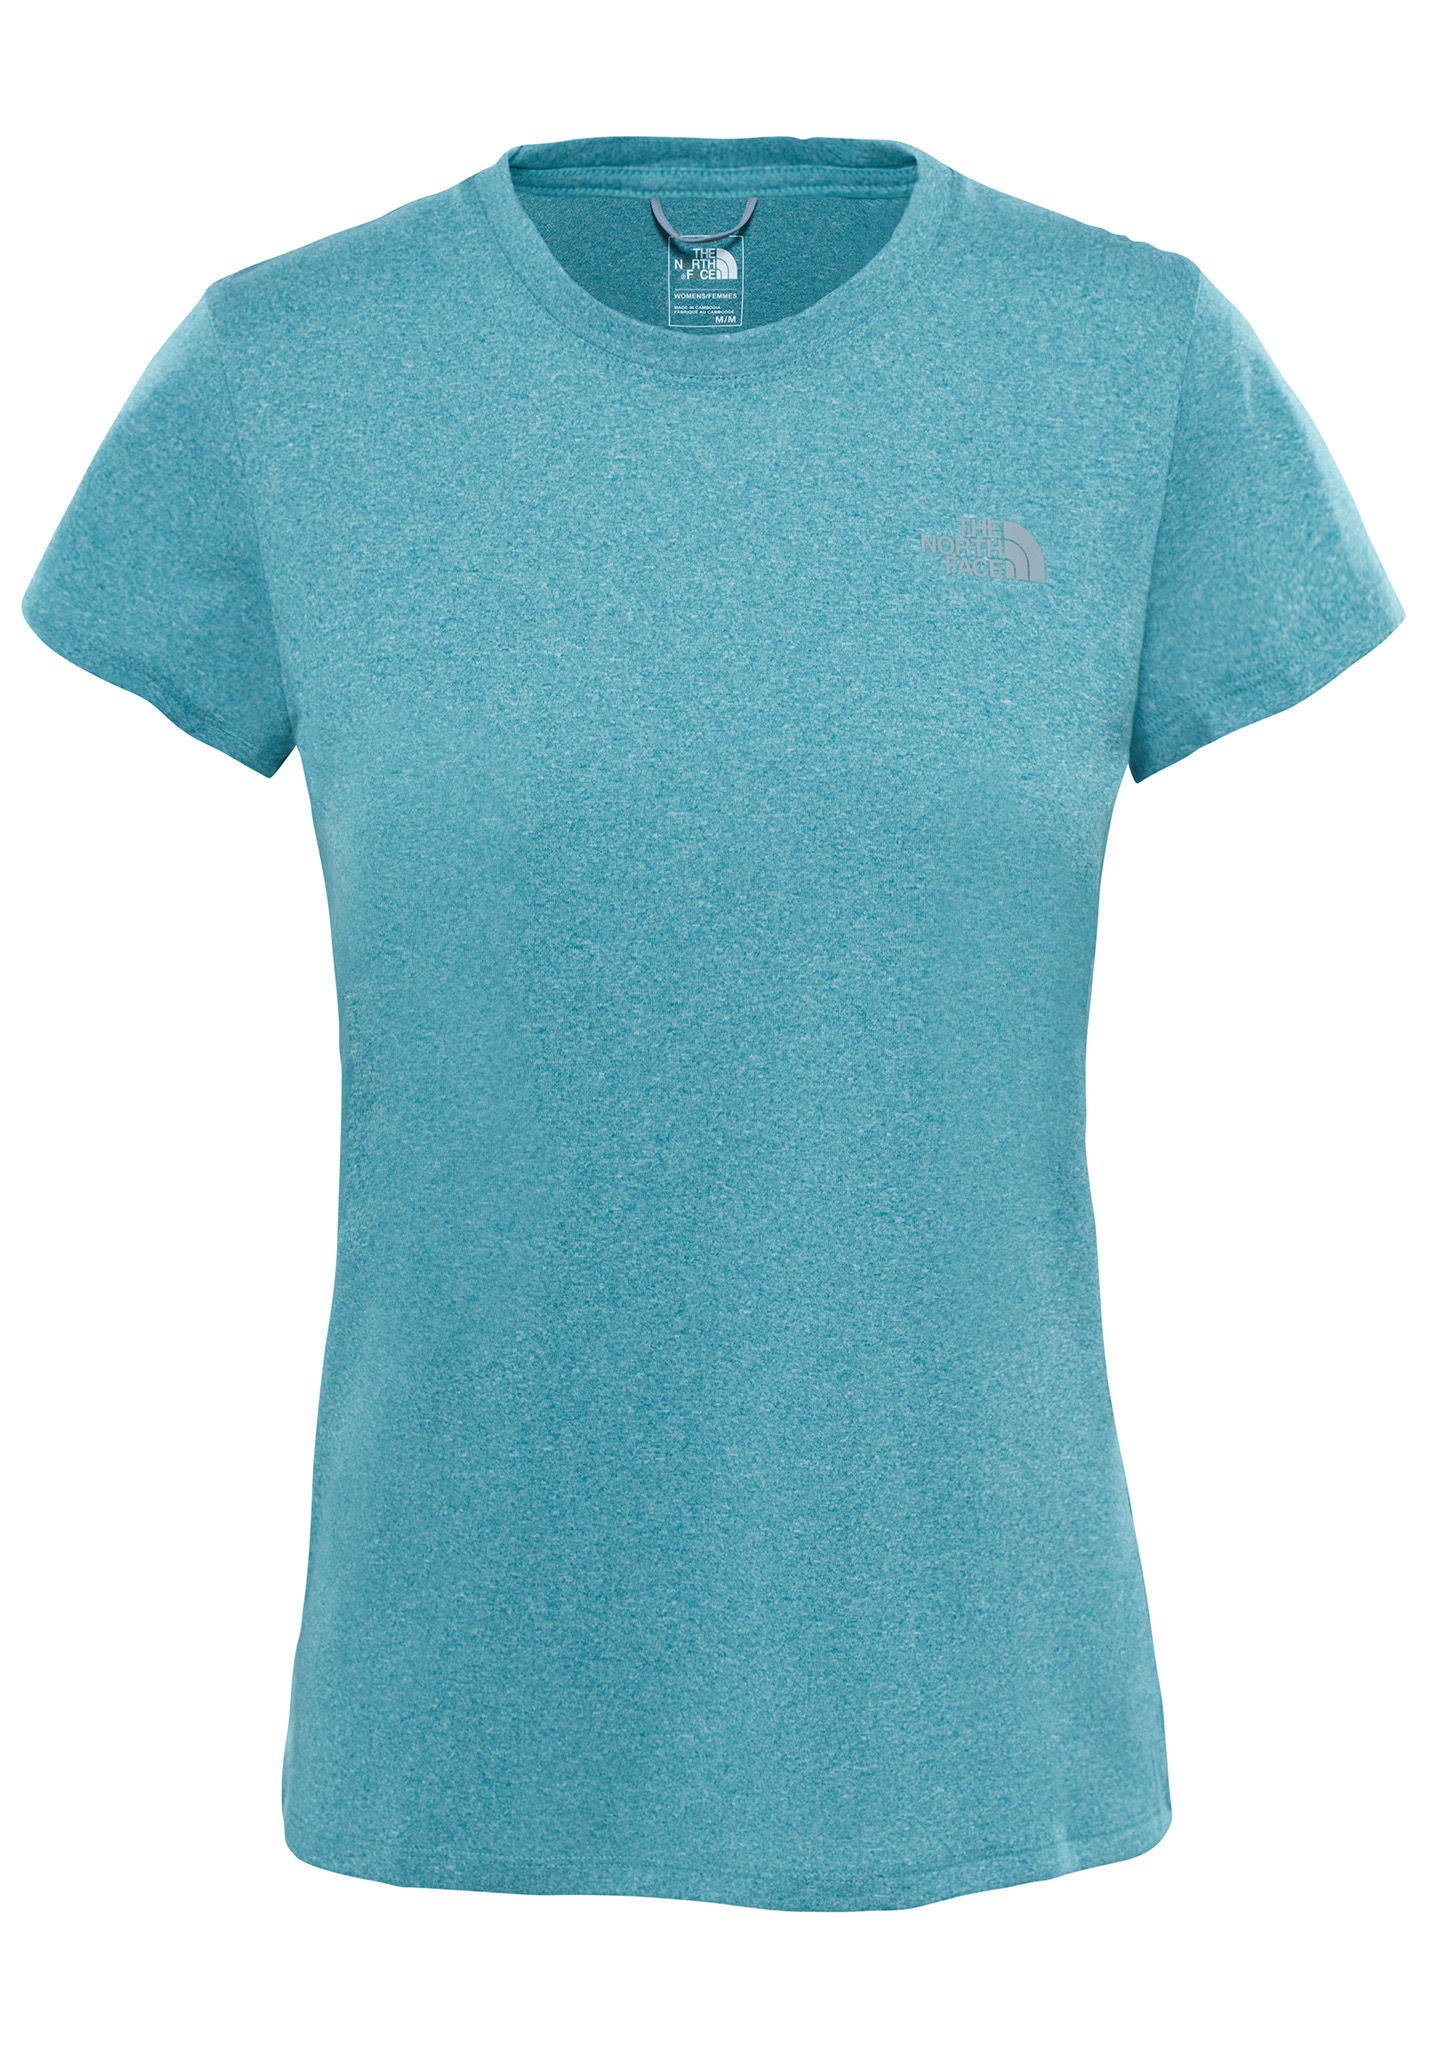 63404eb8ff39 THE NORTH FACE Reaxion Amp Crew - T-Shirt for Women - Blue - Planet Sports